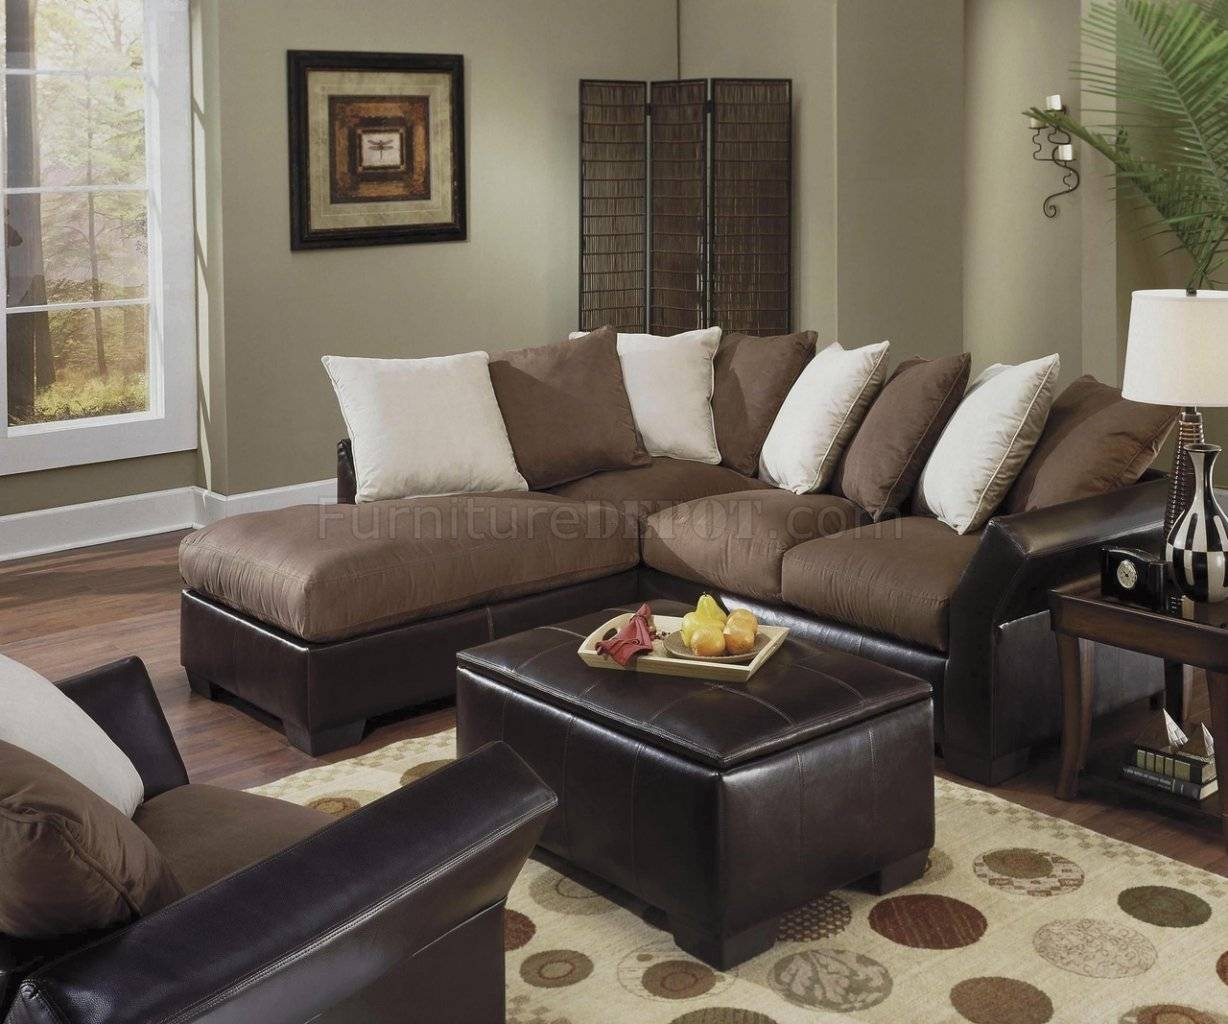 Contemporary Vinyl Leather & Mocha Micro Suede Sectional with Leather and Suede Sectional Sofa (Image 4 of 25)